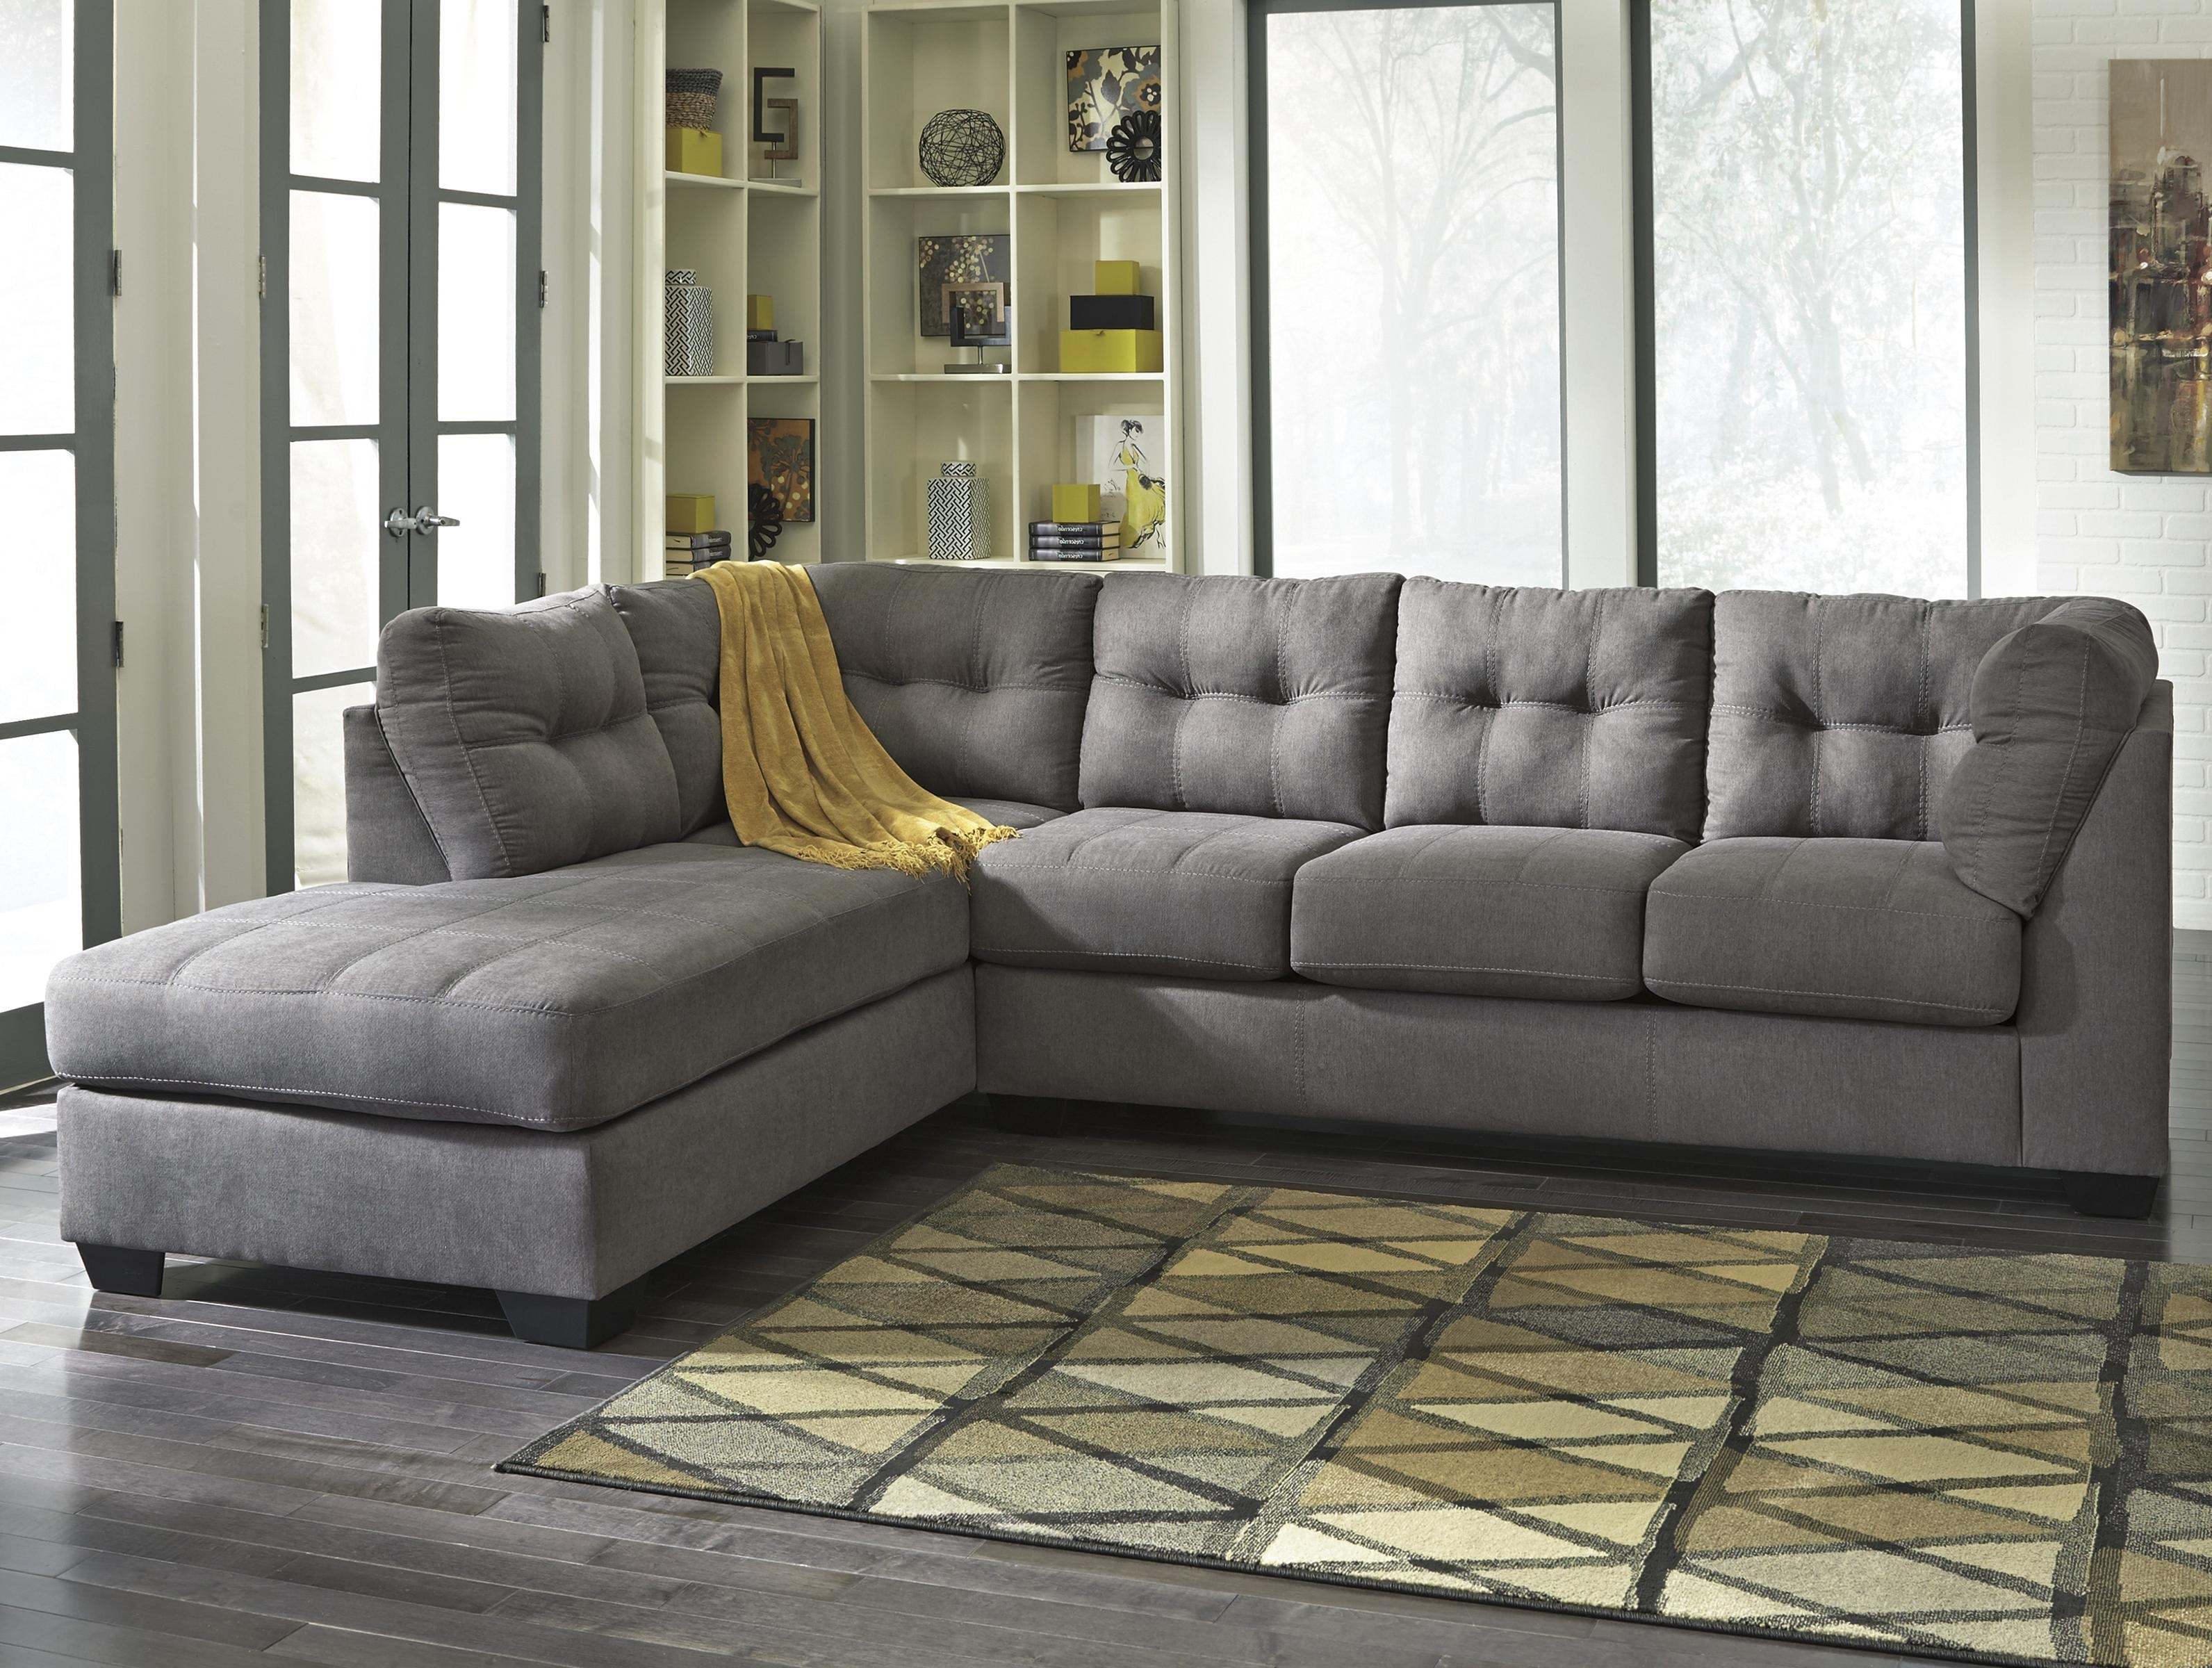 Choosing 2 Piece Sectional Sofa - Elites Home Decor within Kerri 2 Piece Sectionals With Raf Chaise (Image 8 of 30)